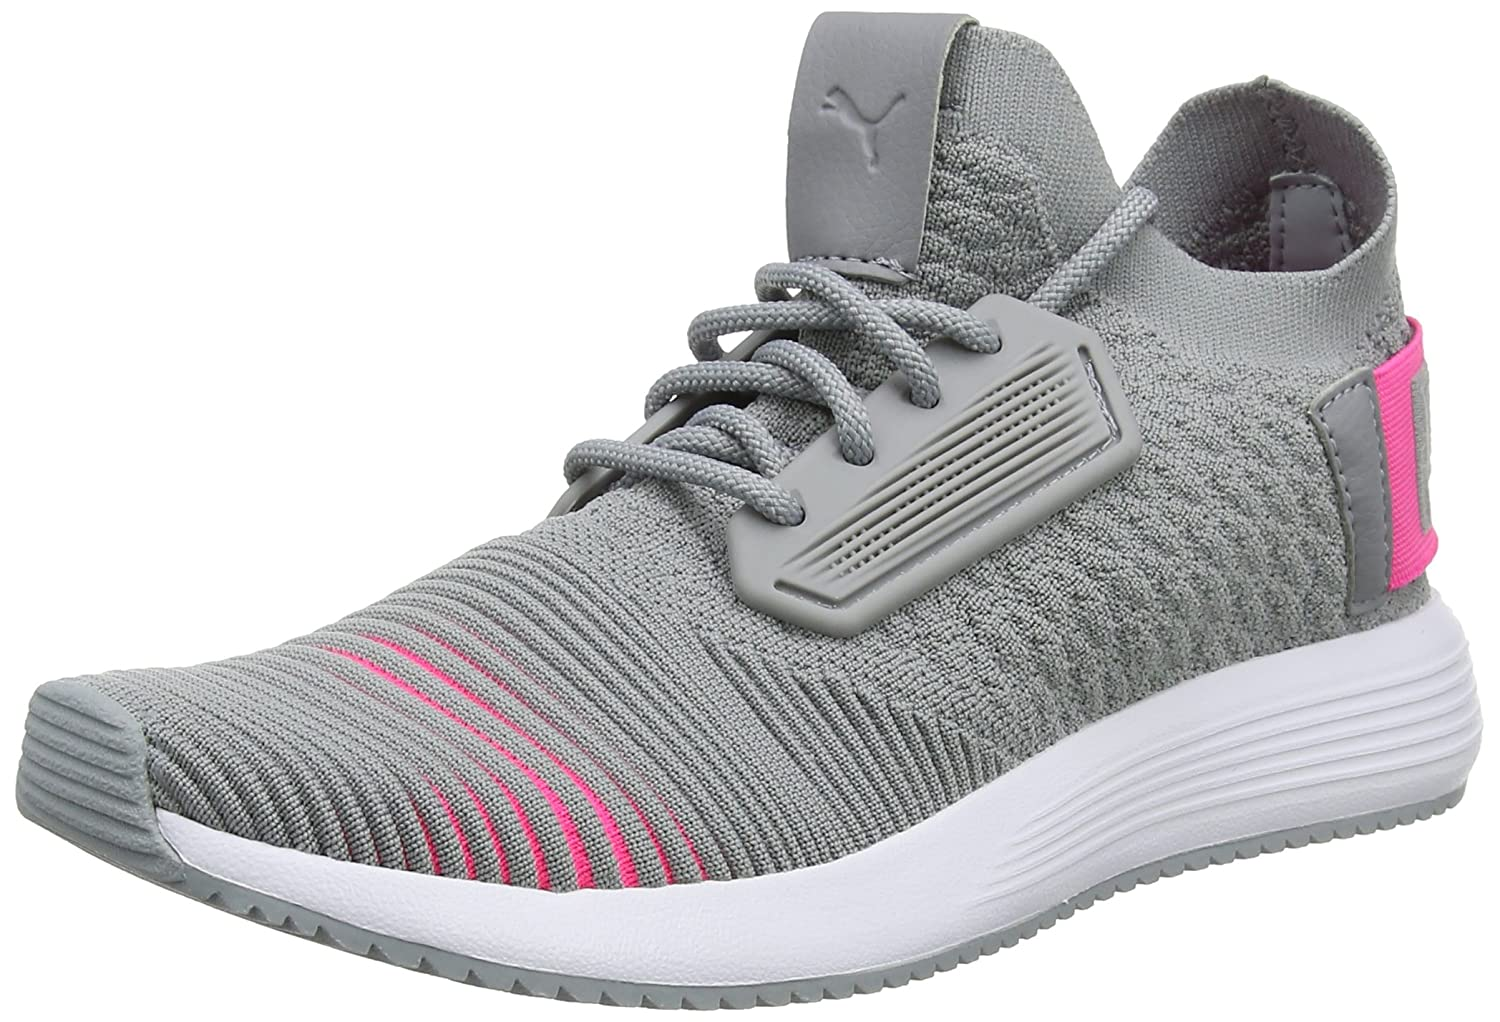 TALLA 38.5 EU. Puma Uprise Color Shift, Zapatillas Unisex Adulto